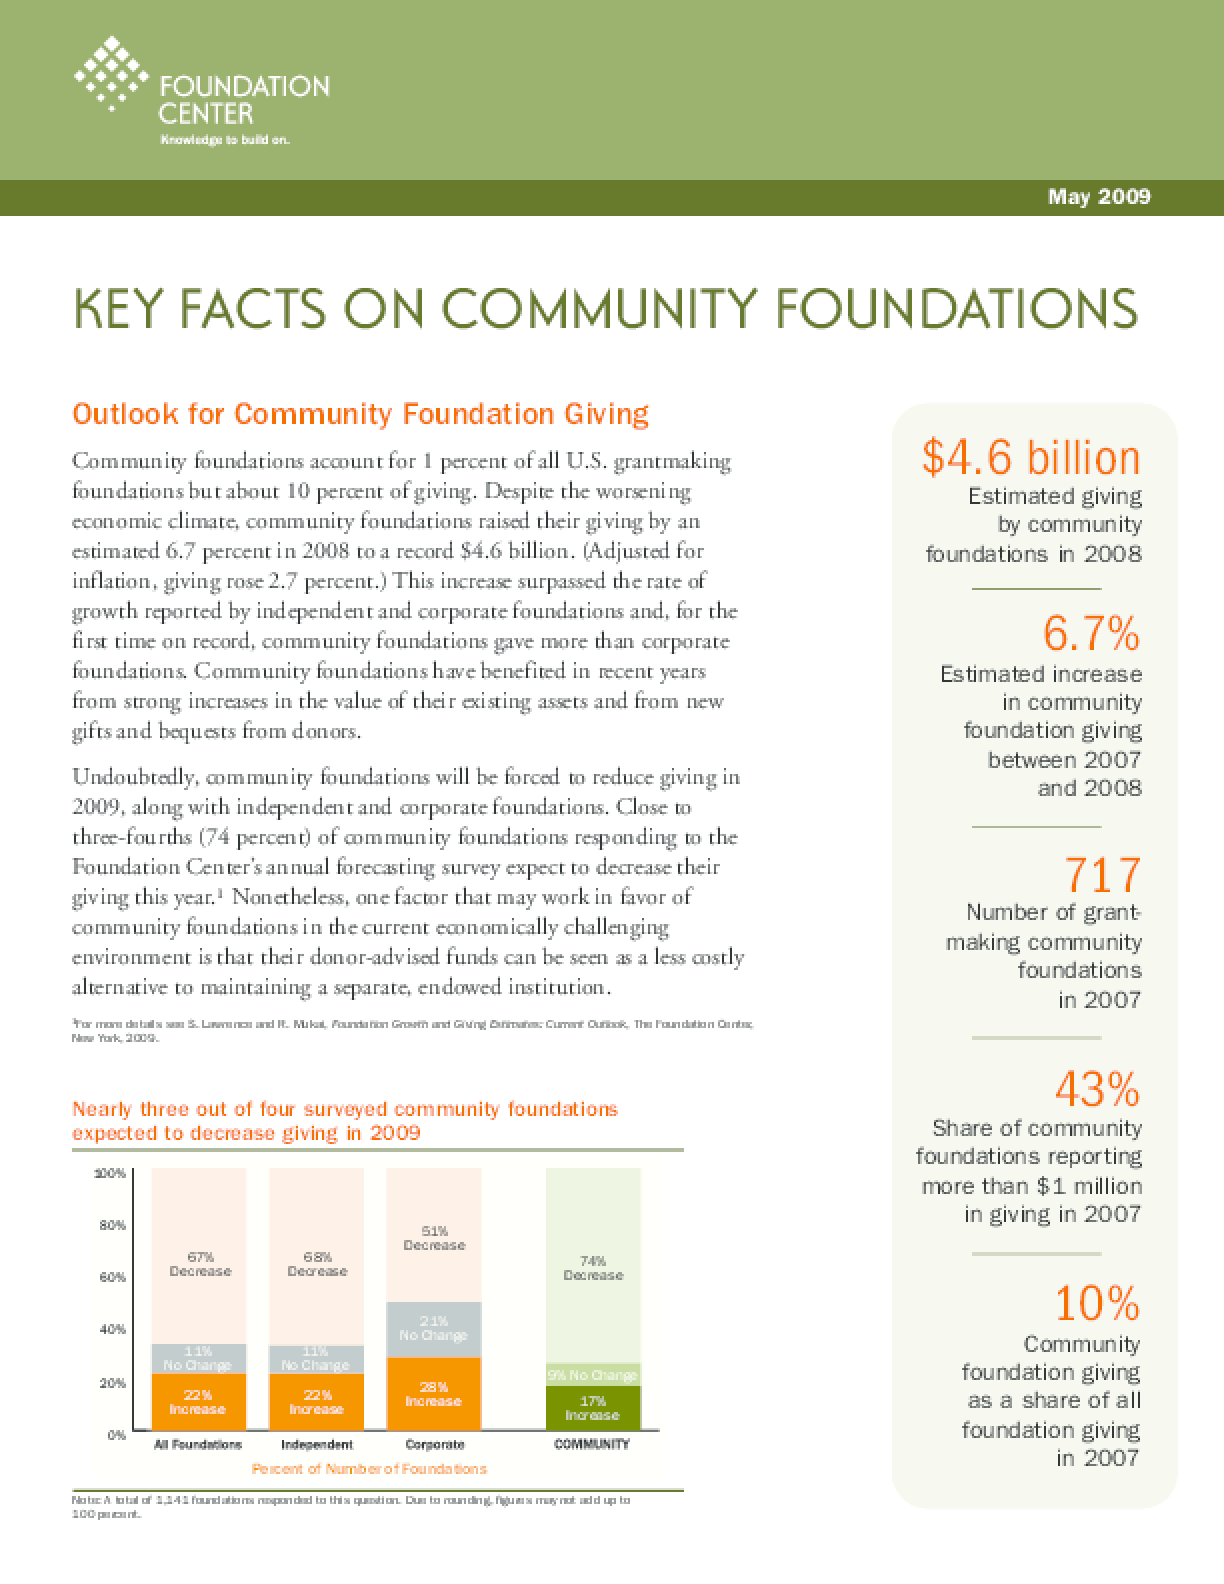 Key Facts on Community Foundations 2009